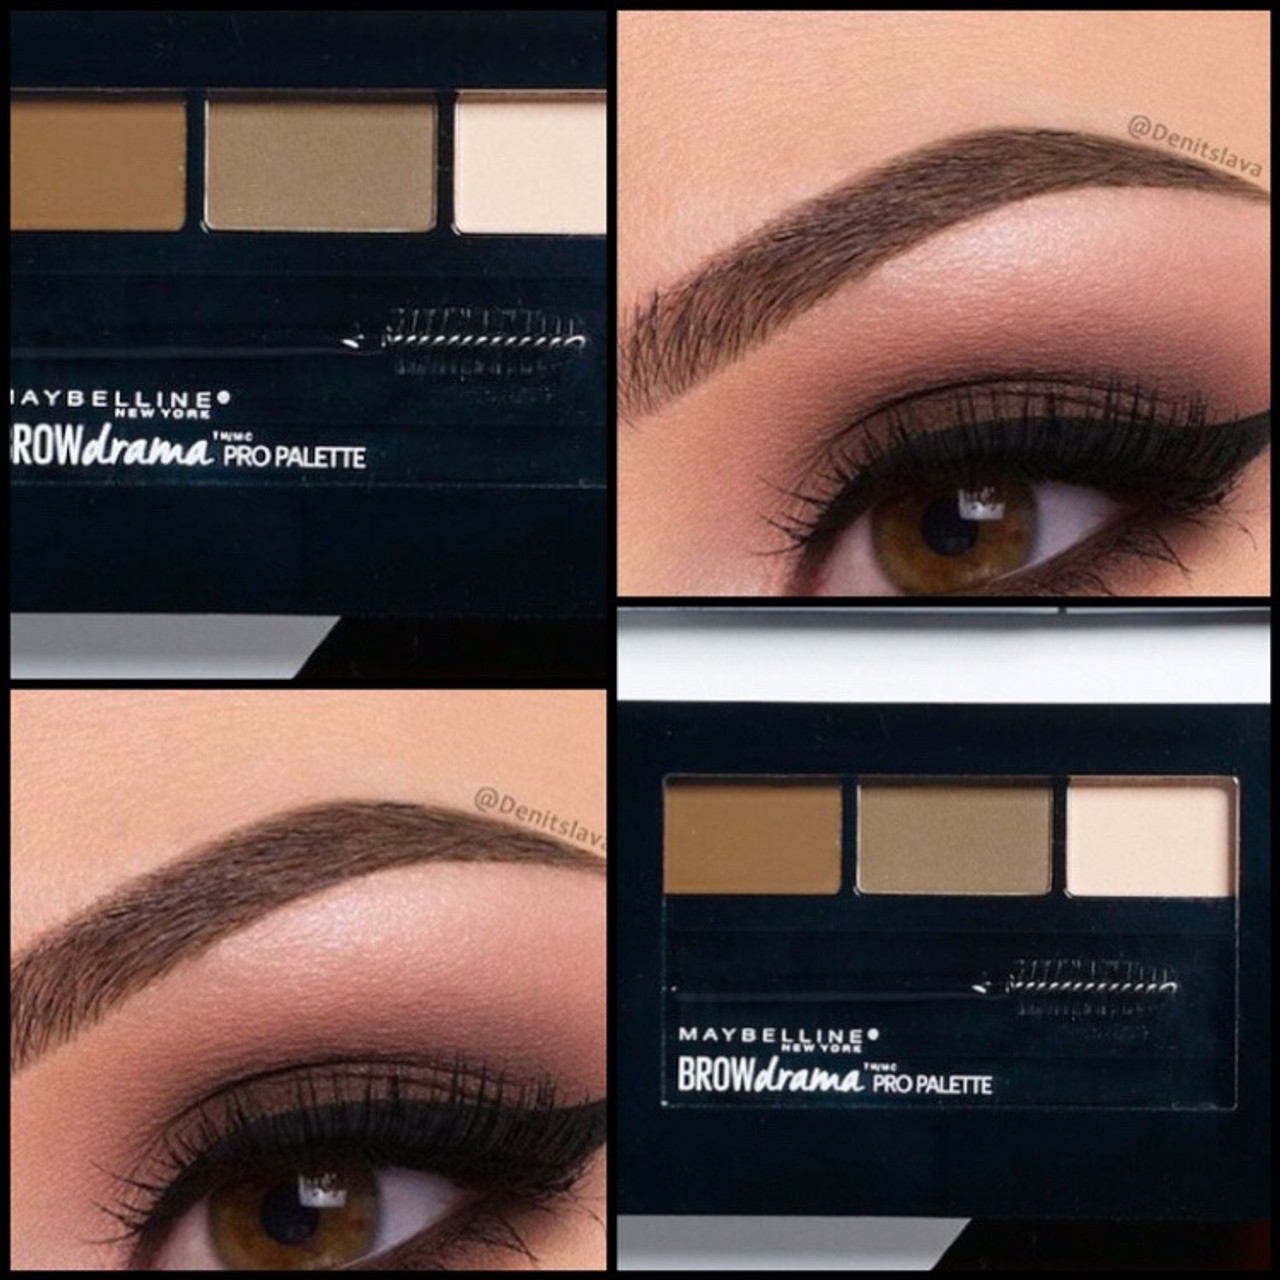 7702f19cbe8 Maybelline Brow Drama Pro Eyebrow Palette - Nationwide Campus